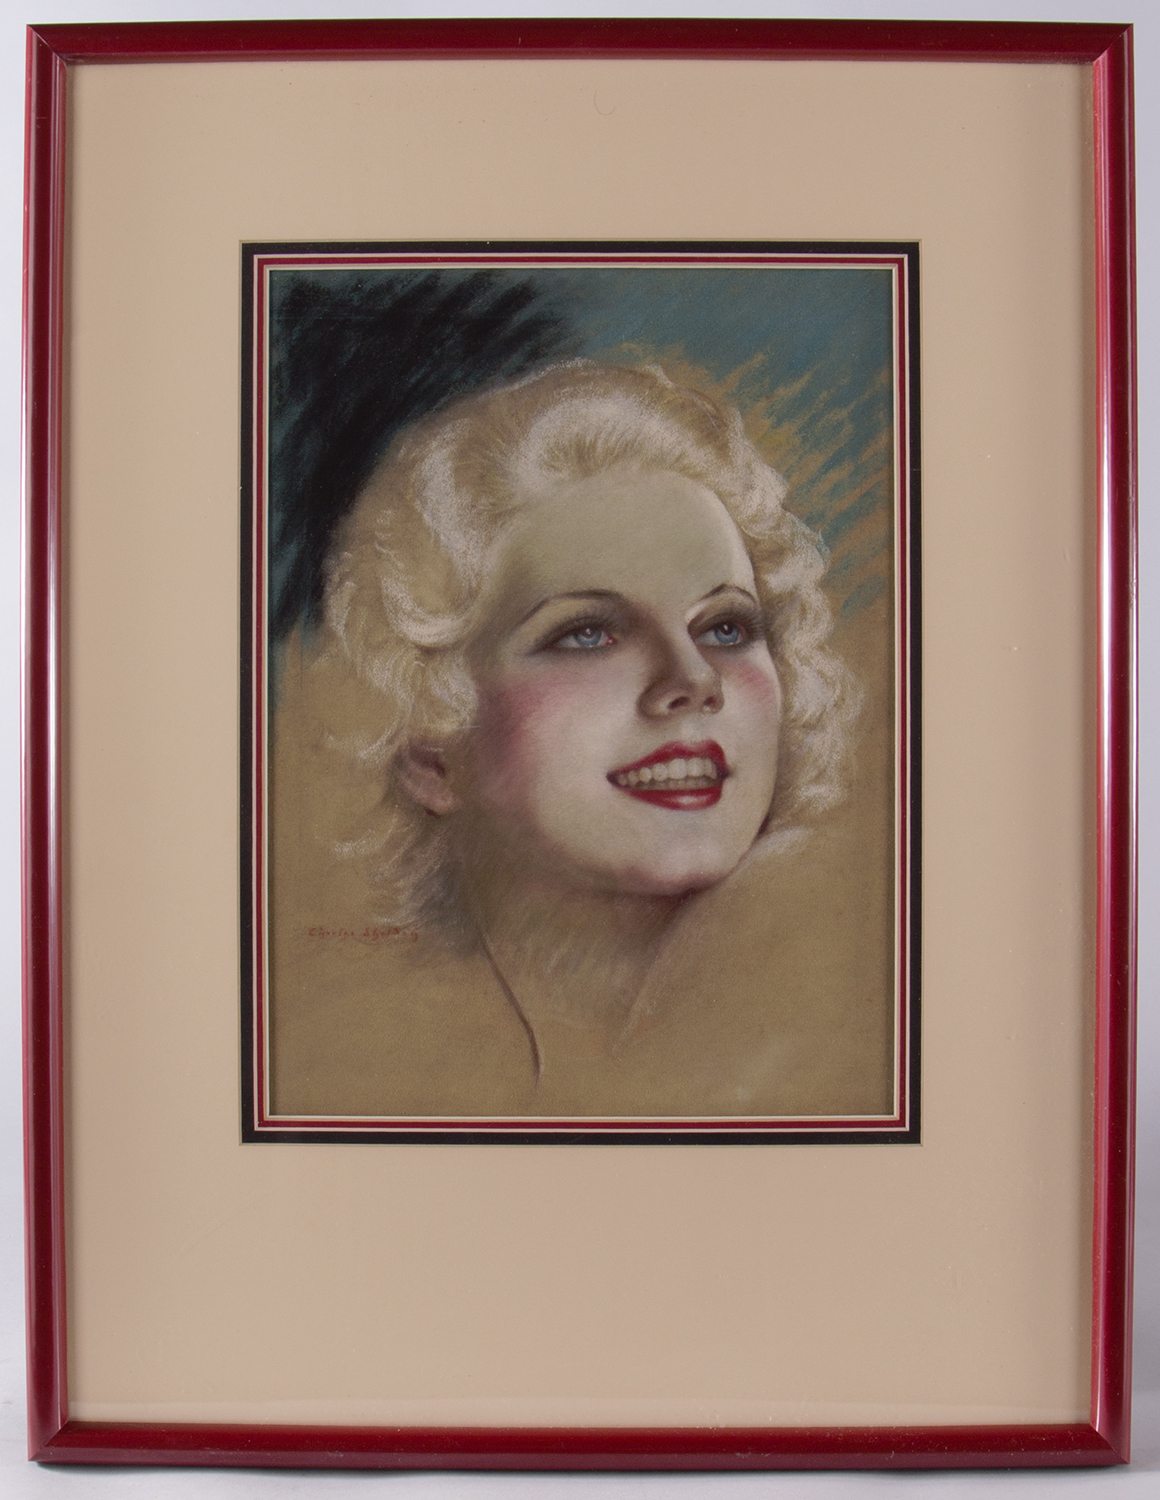 Pastel of Jean Harlow by Charles Sheldon in frame